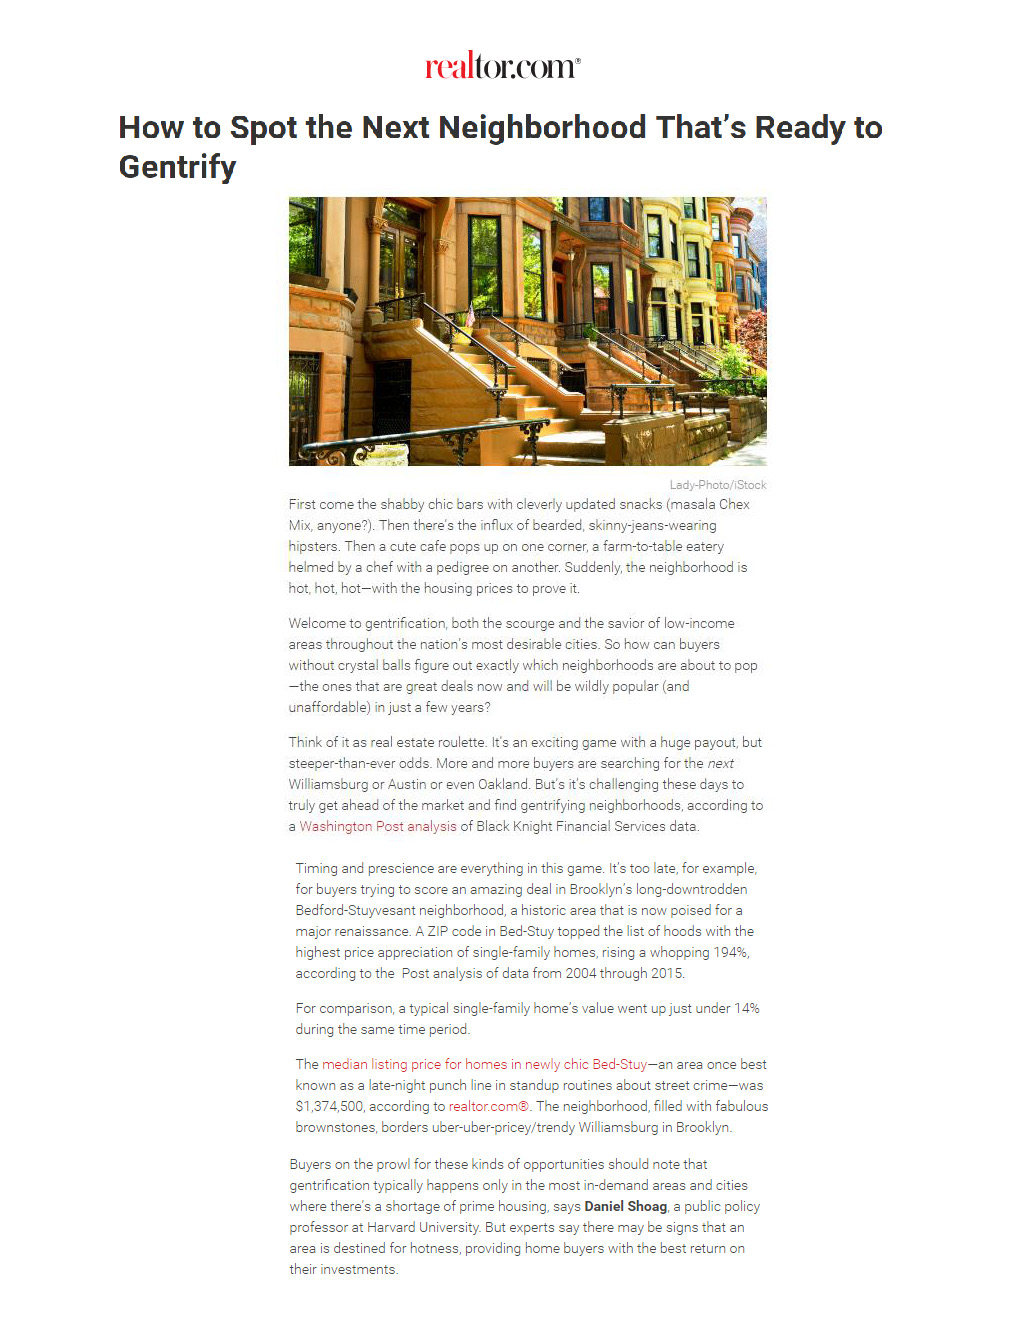 Realtor.com - How to Spot the Next Neighborhood That's Ready to Gentrify 5.2.16 (2)_Page_1